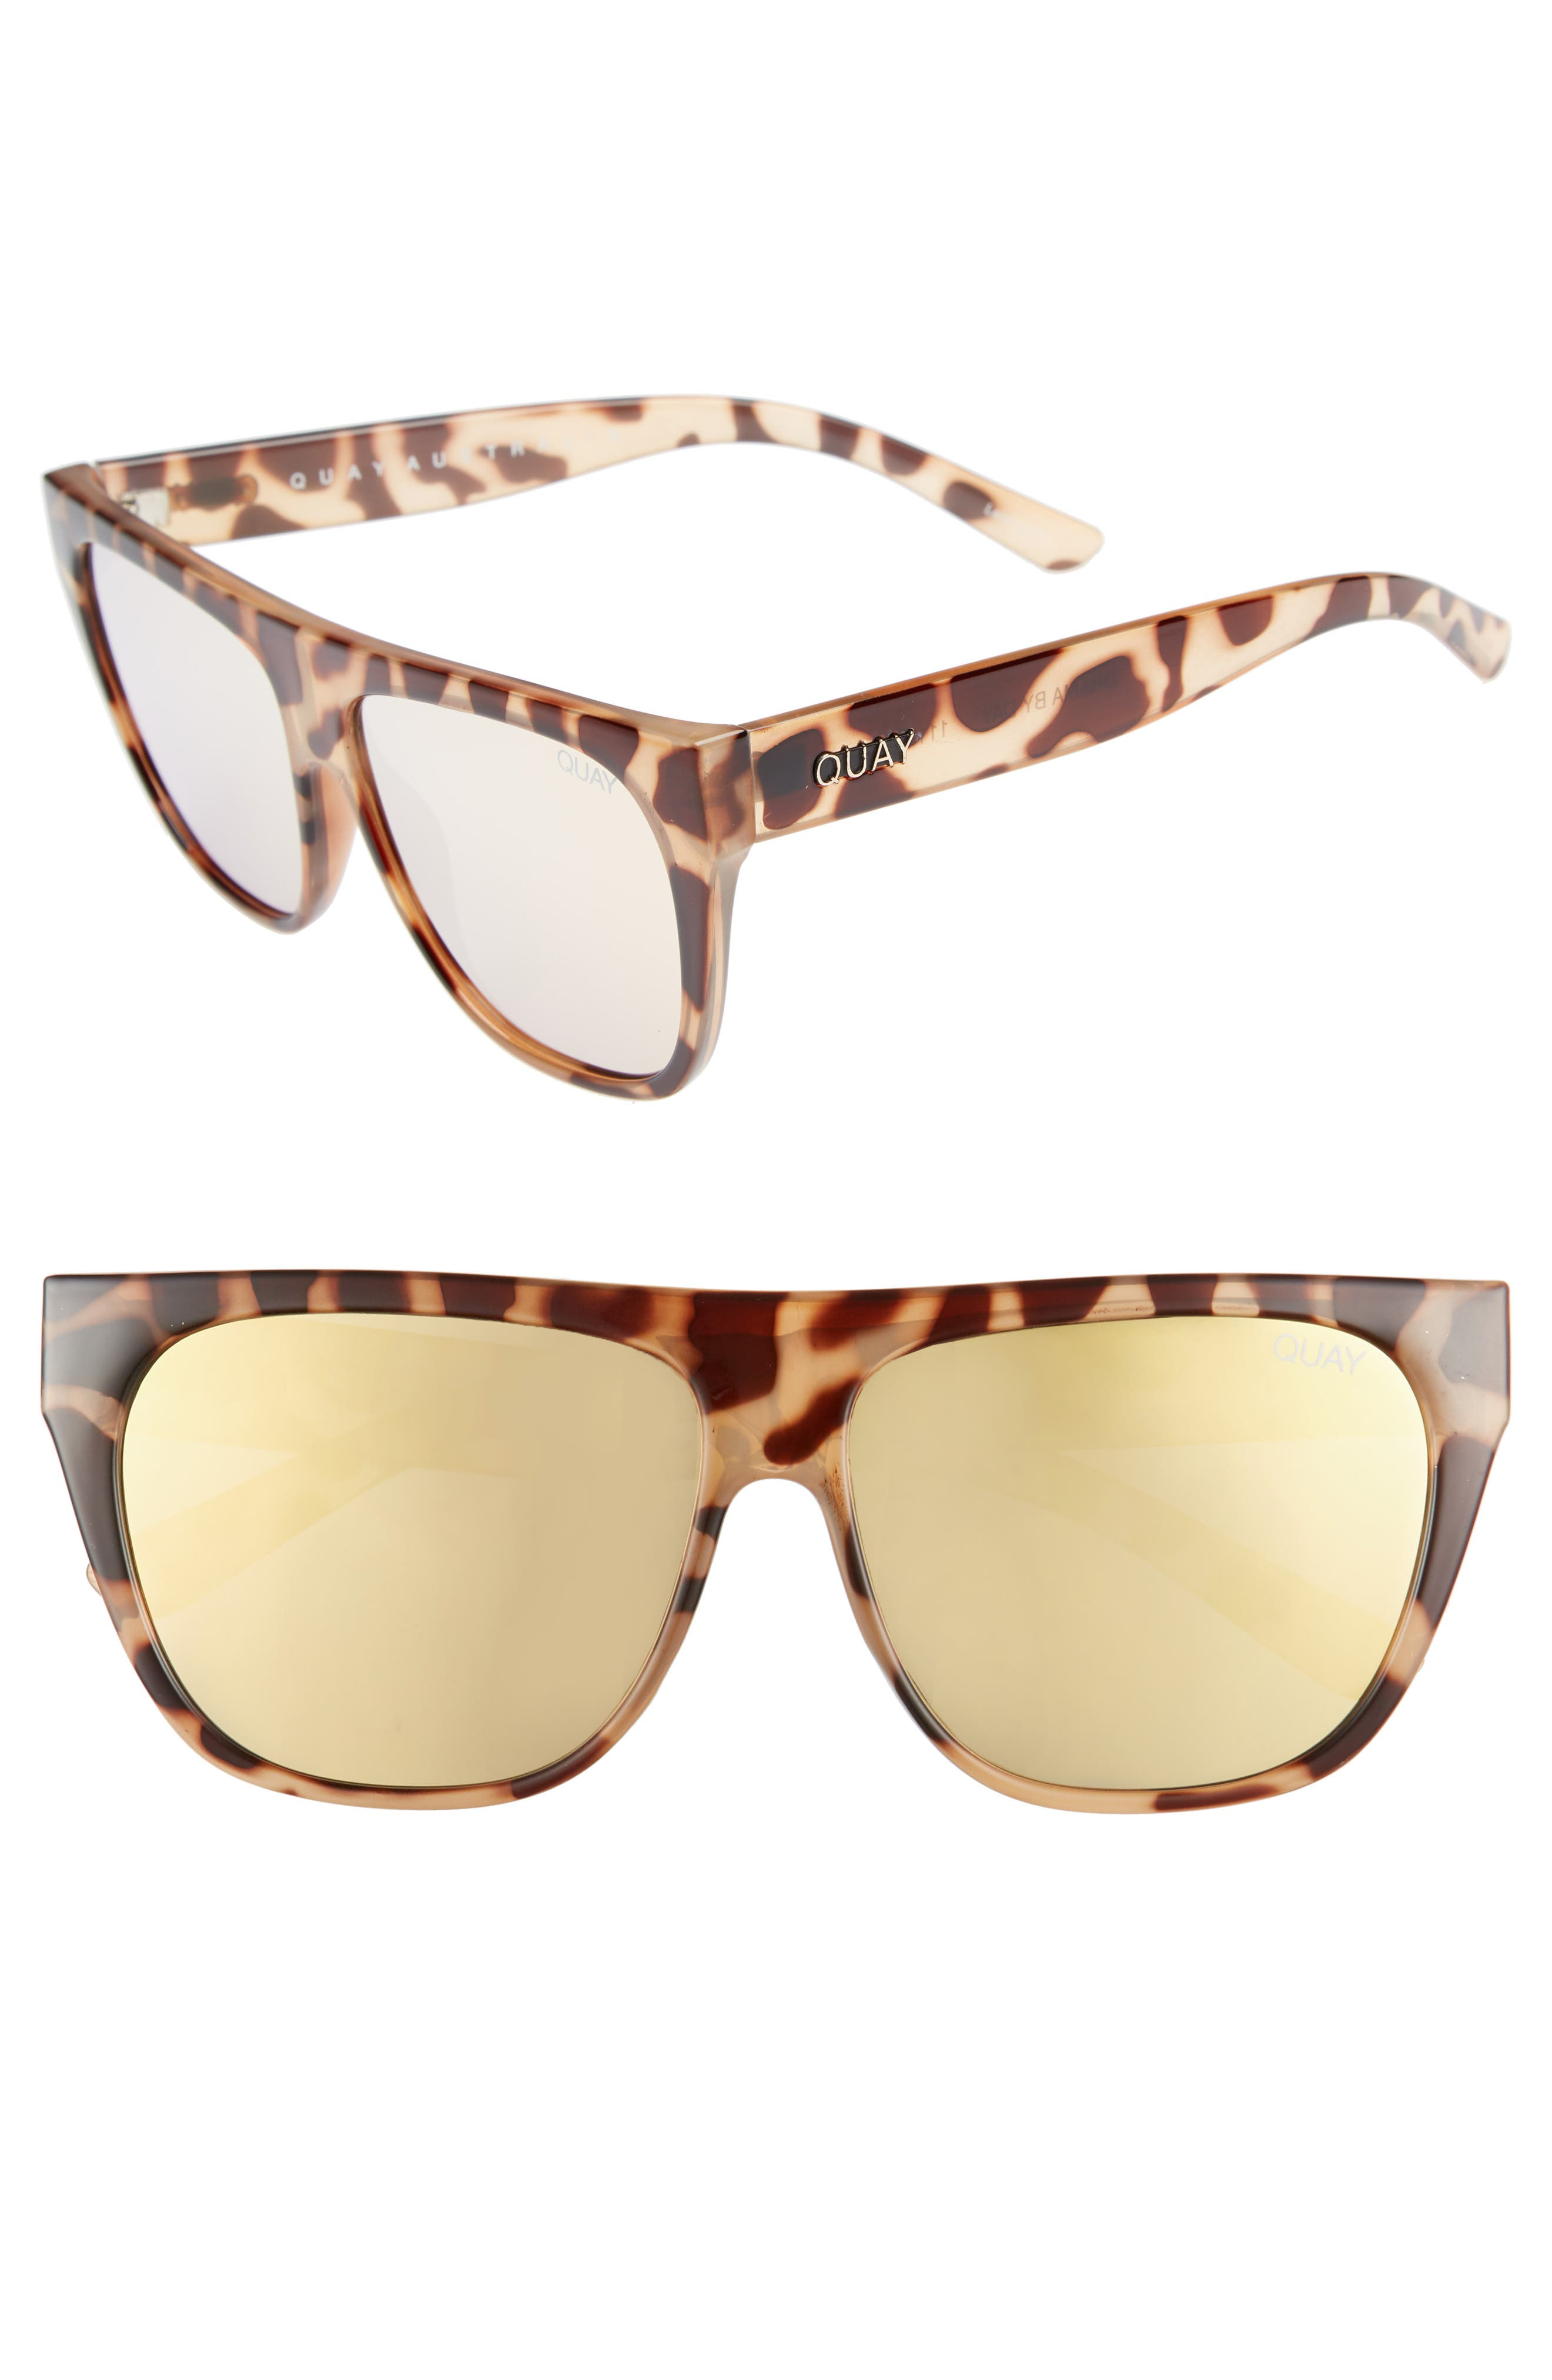 x Tony Bianco Drama by Day 55mm Square Sunglasses,                             Main thumbnail 1, color,                             Tort/ Gold